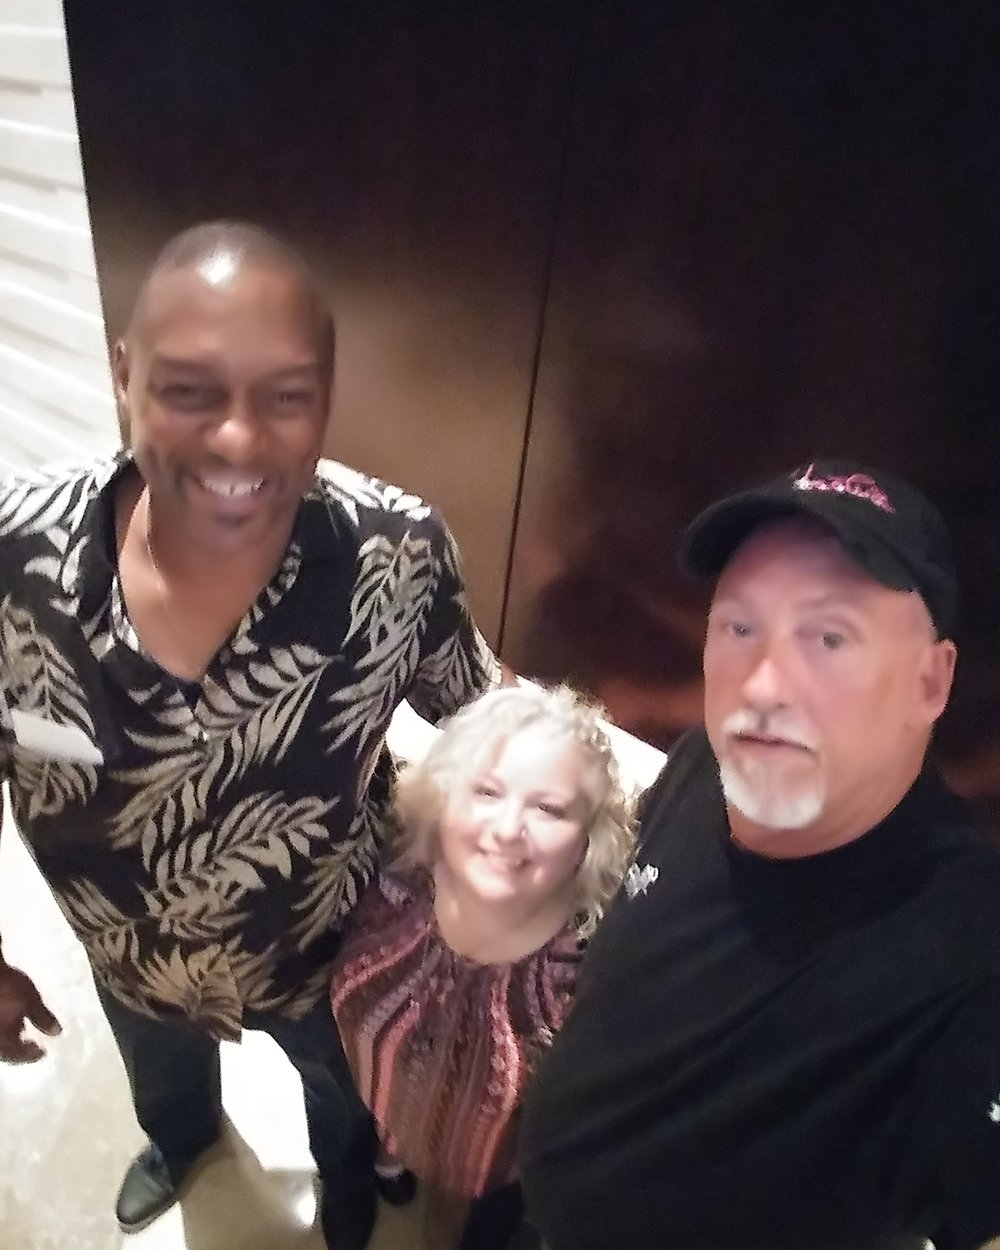 Here I am (in the middle) meeting gentle giant, Carey Hall (right), from Ice Road Truckers at the Great American Truck Show in Dallas with my fiance' Allen Wilcher (left).